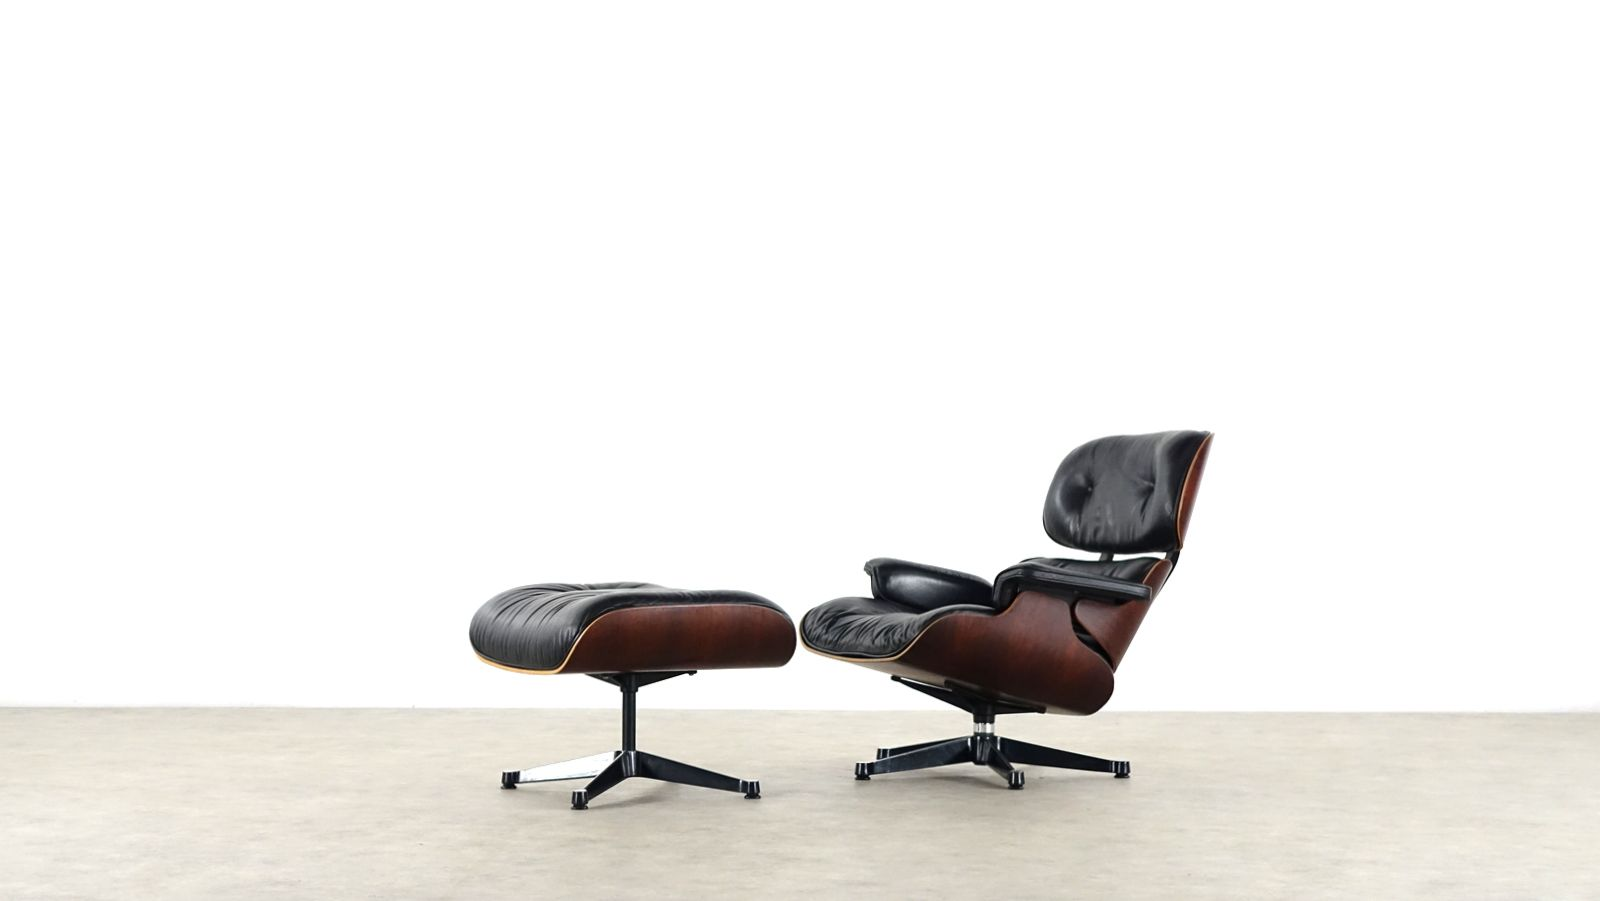 Eames lounge chair ottoman by charles ray eames for herman miller - Herman miller france ...